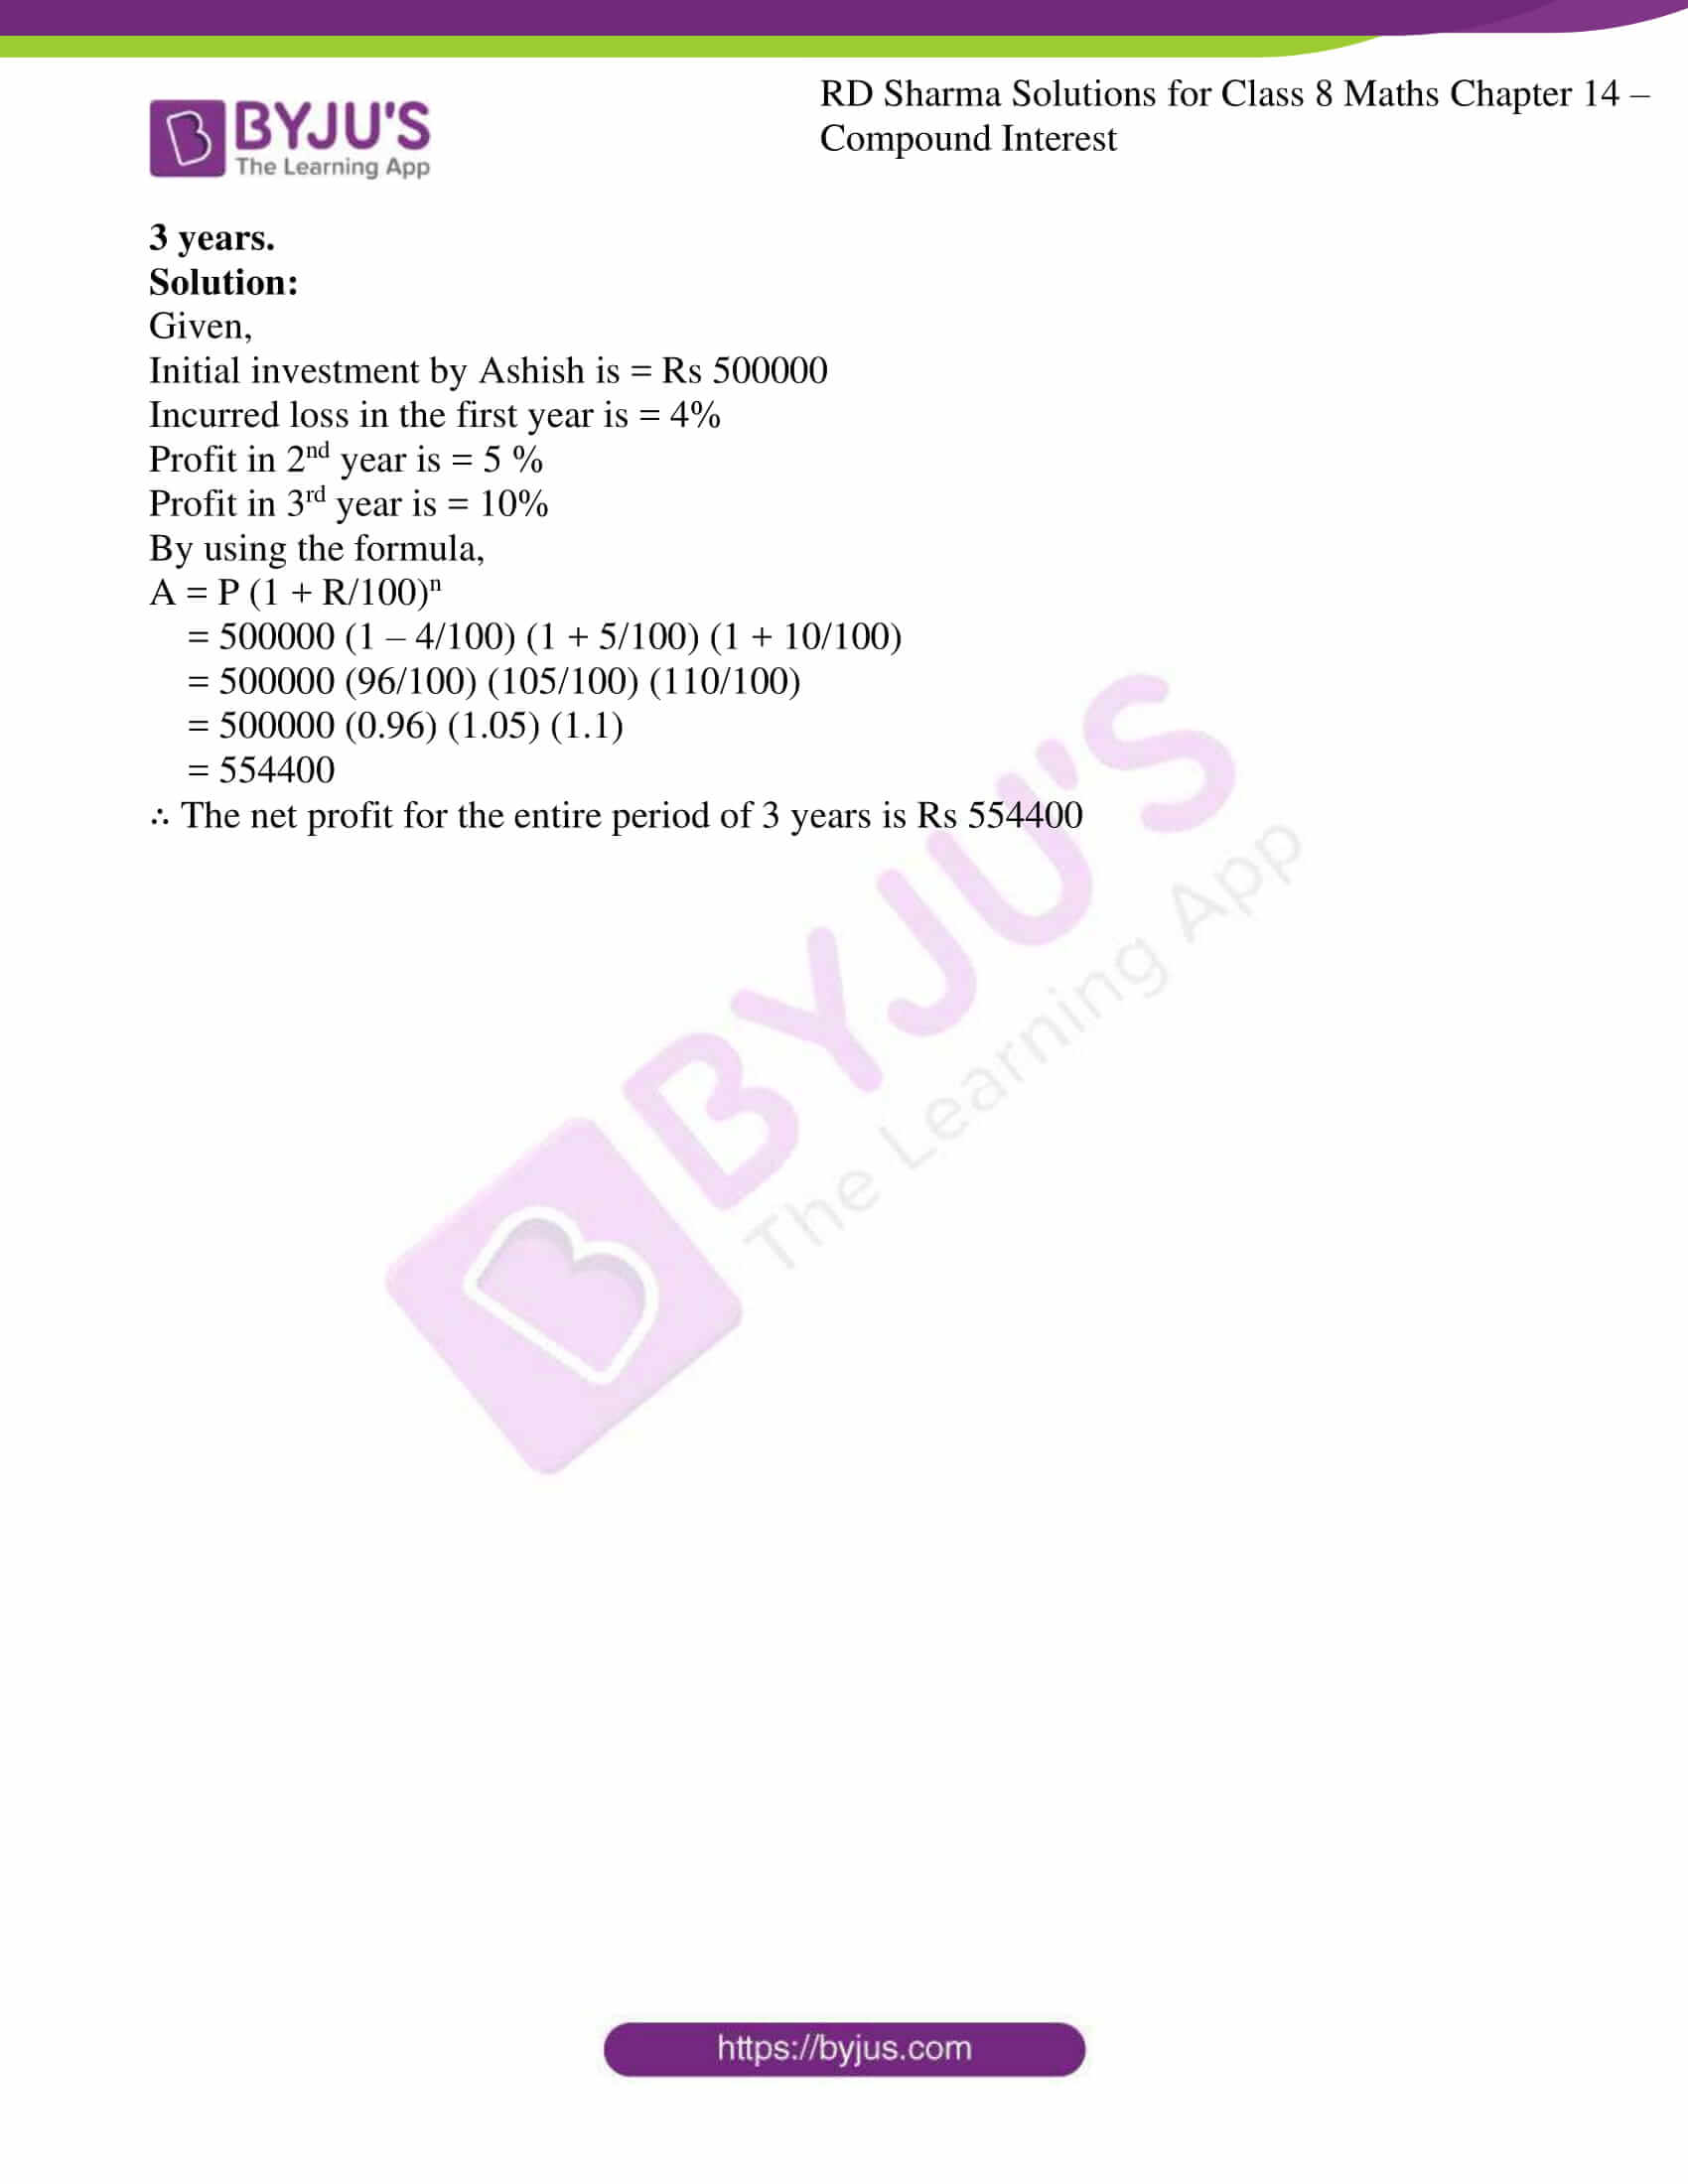 Rd Sharma Solutions For Class 8 Chapter 14 Compound